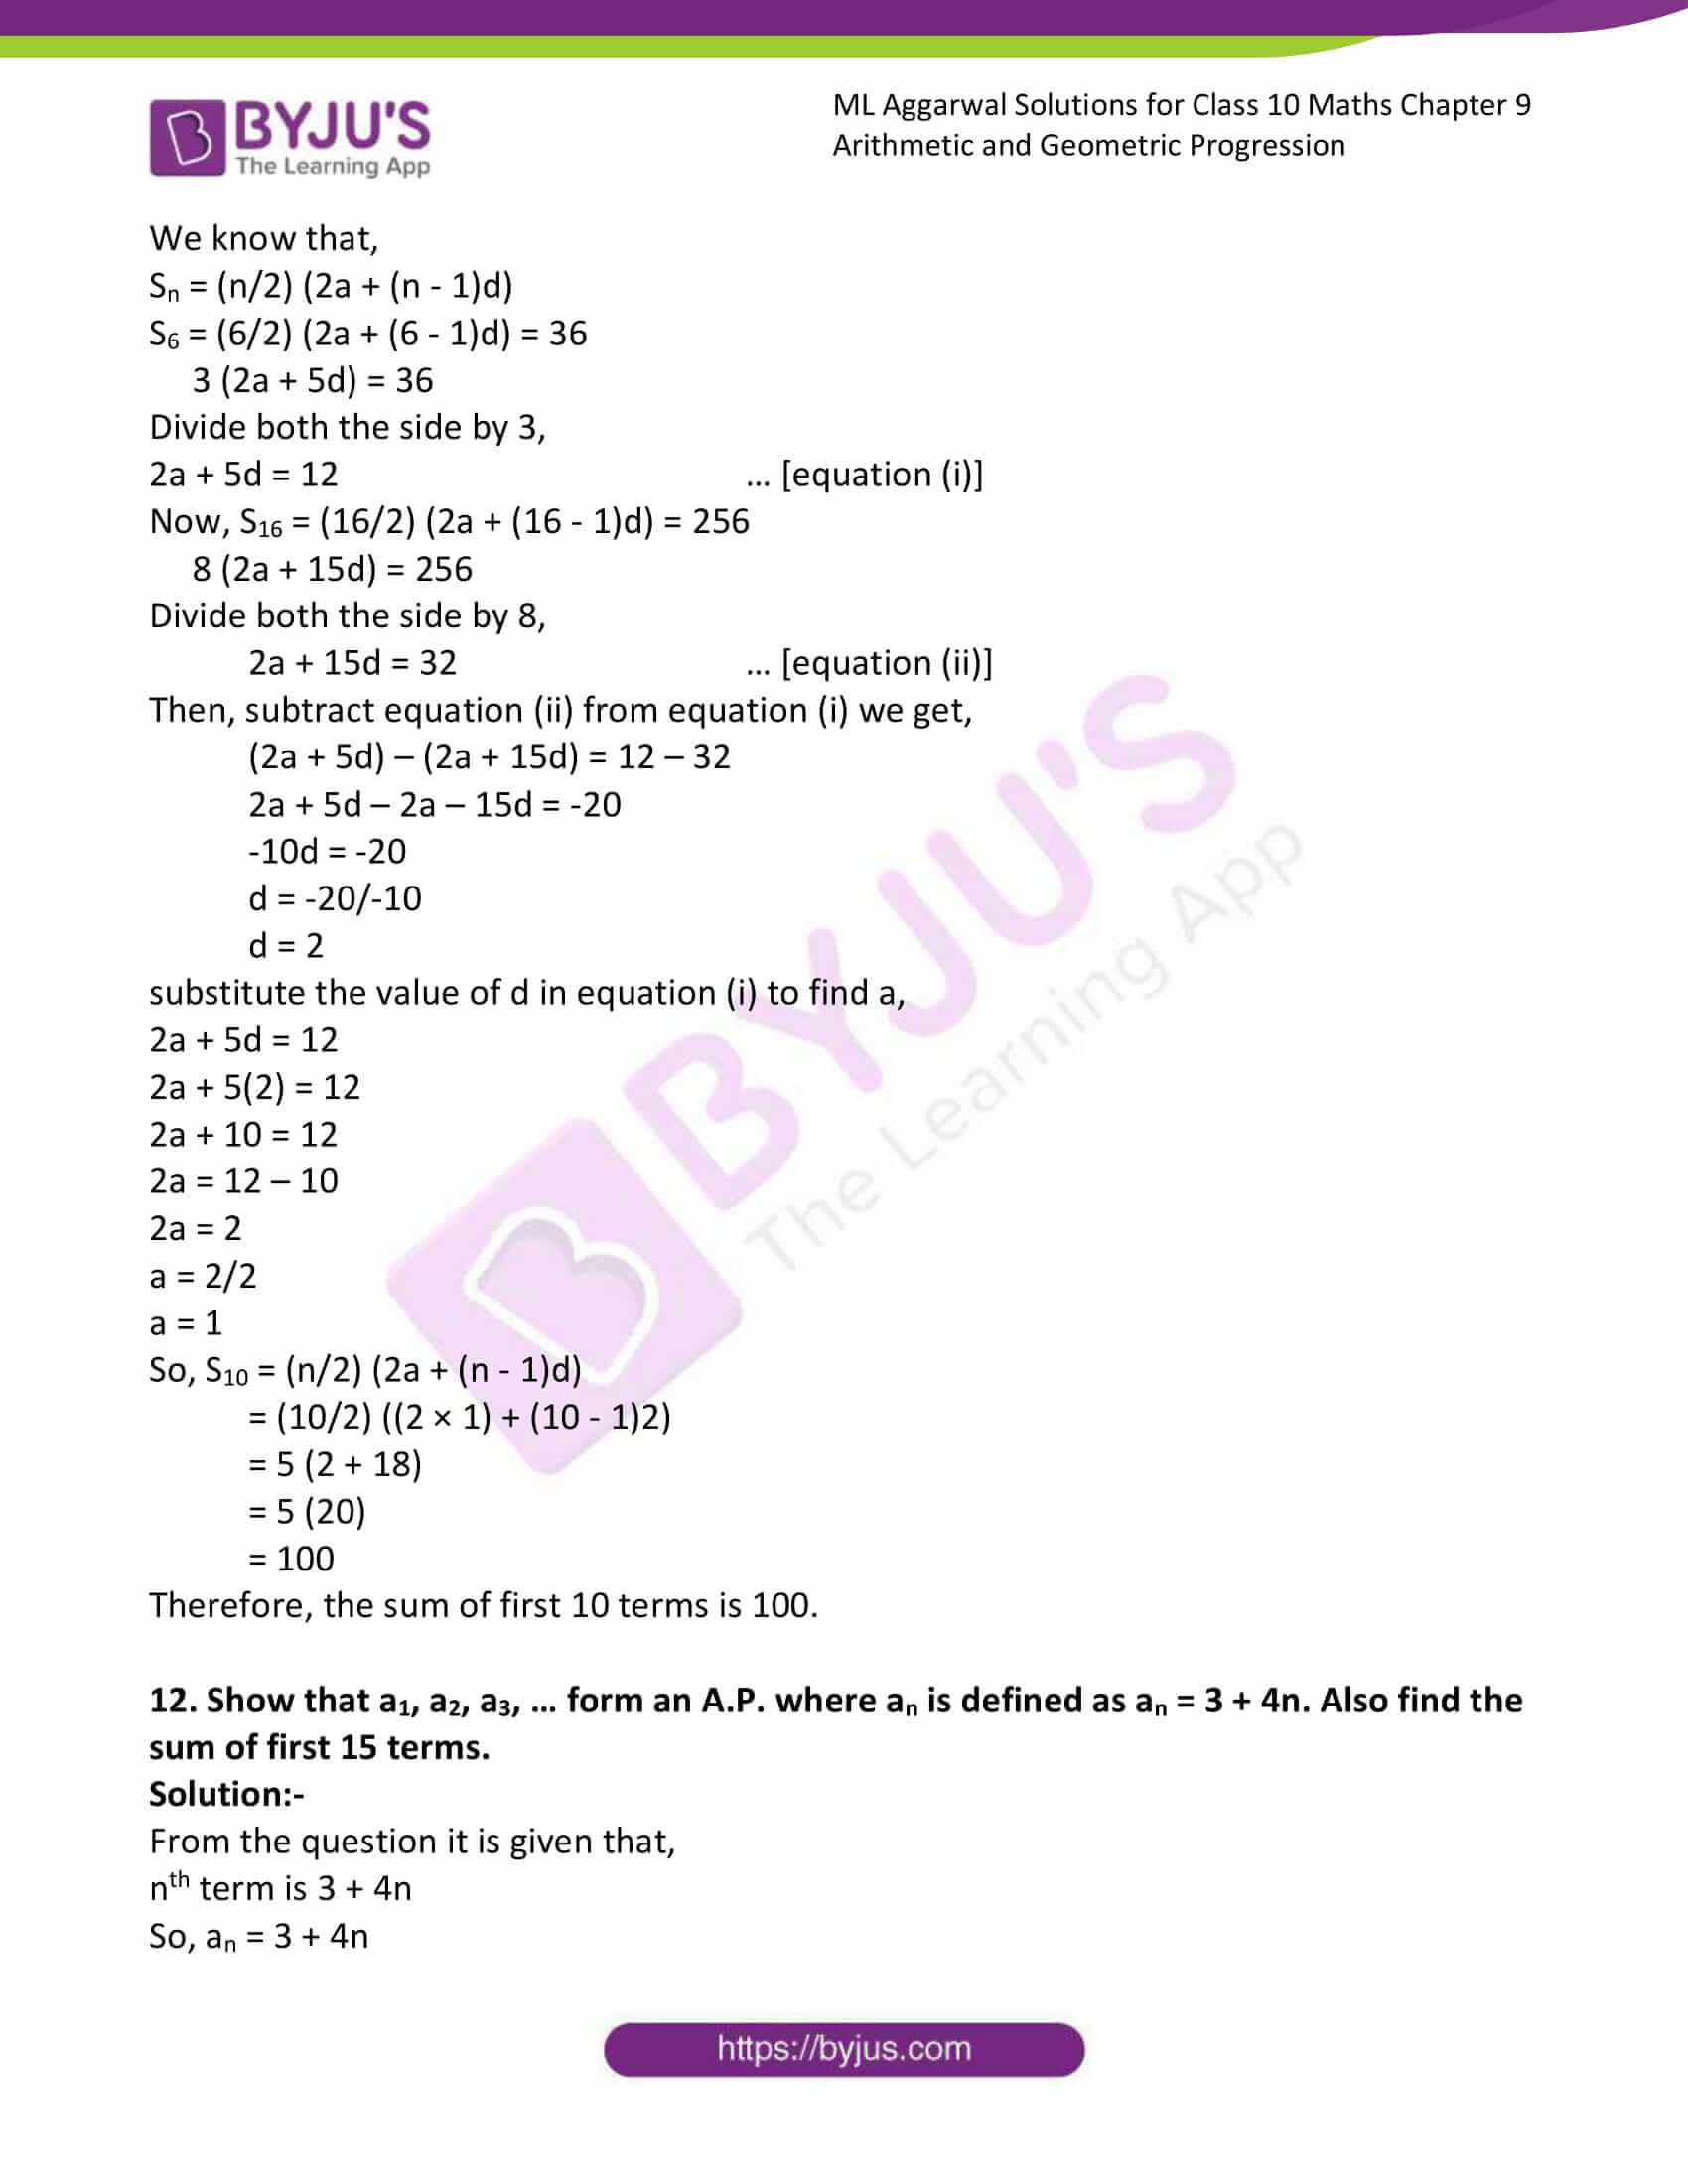 ml aggarwal solutions class 10 maths chapter 9 39